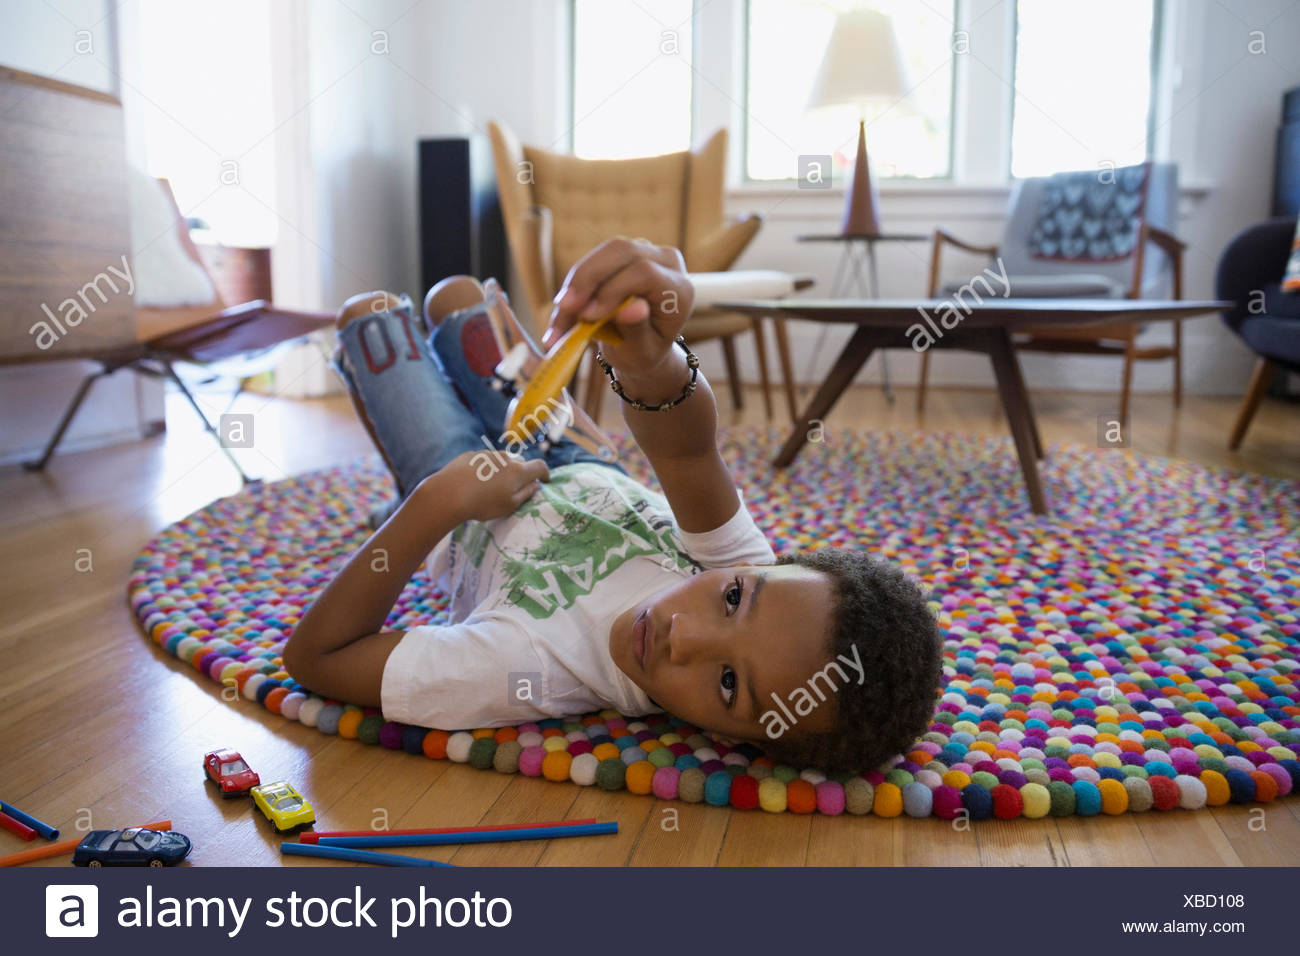 Boy playing with toy plane on rug - Stock Image